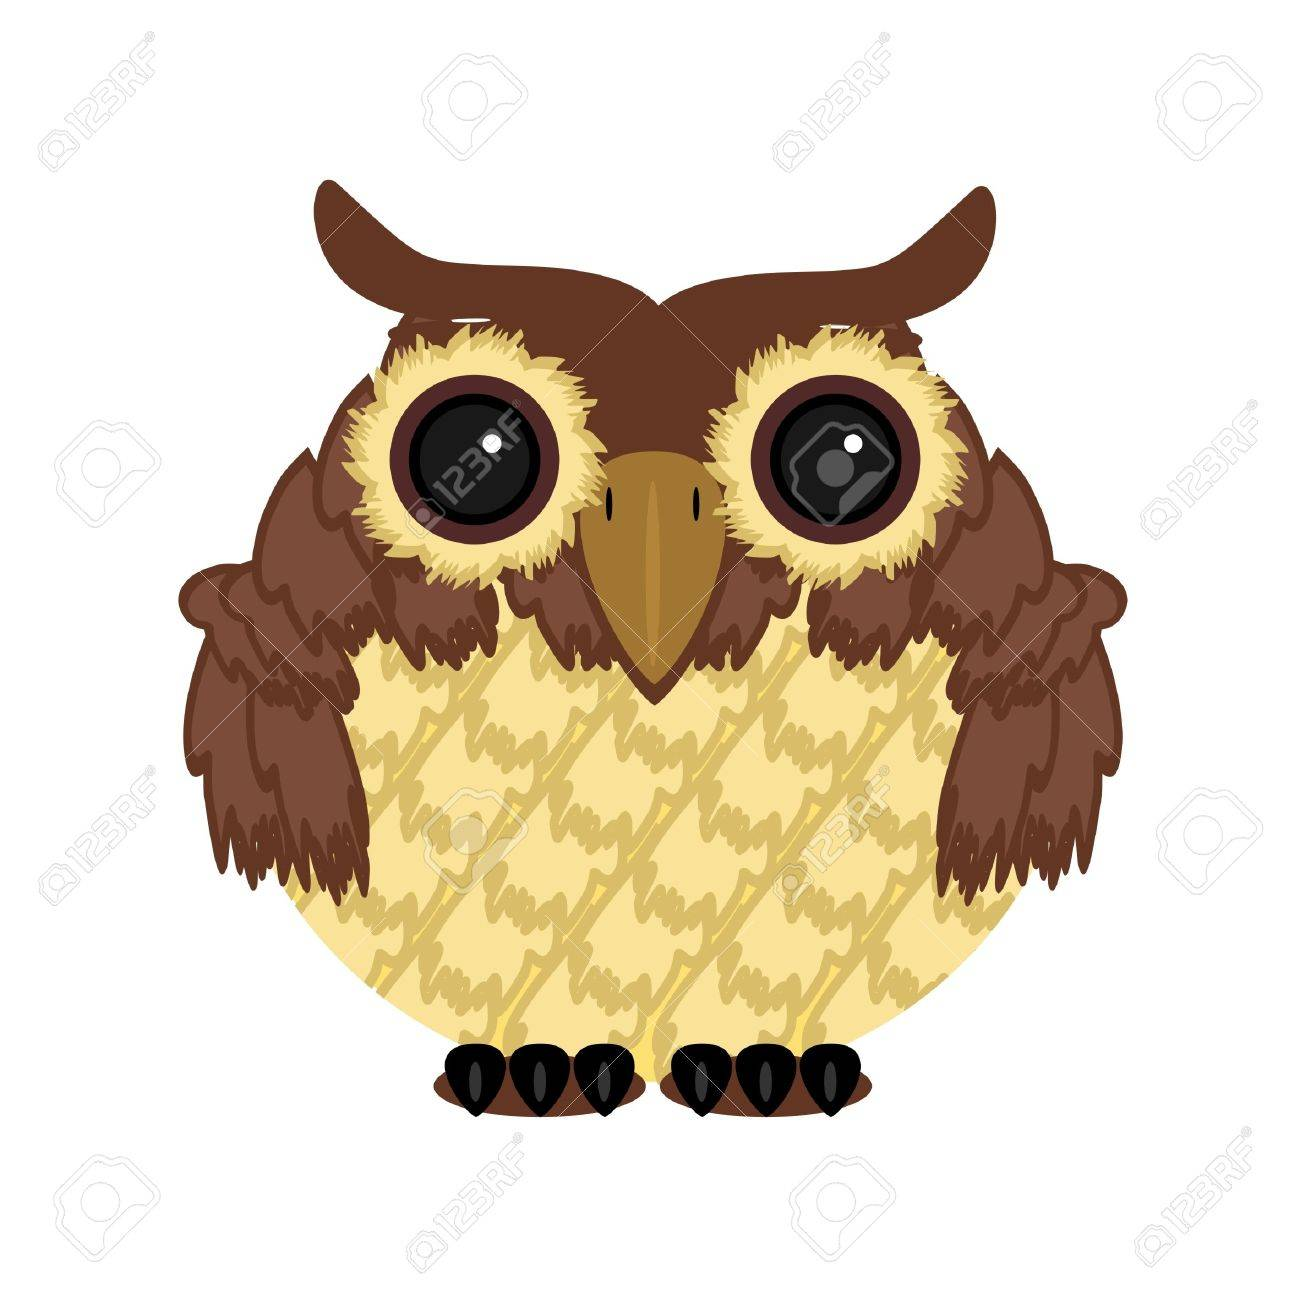 owl on white background Stock Vector - 11660882